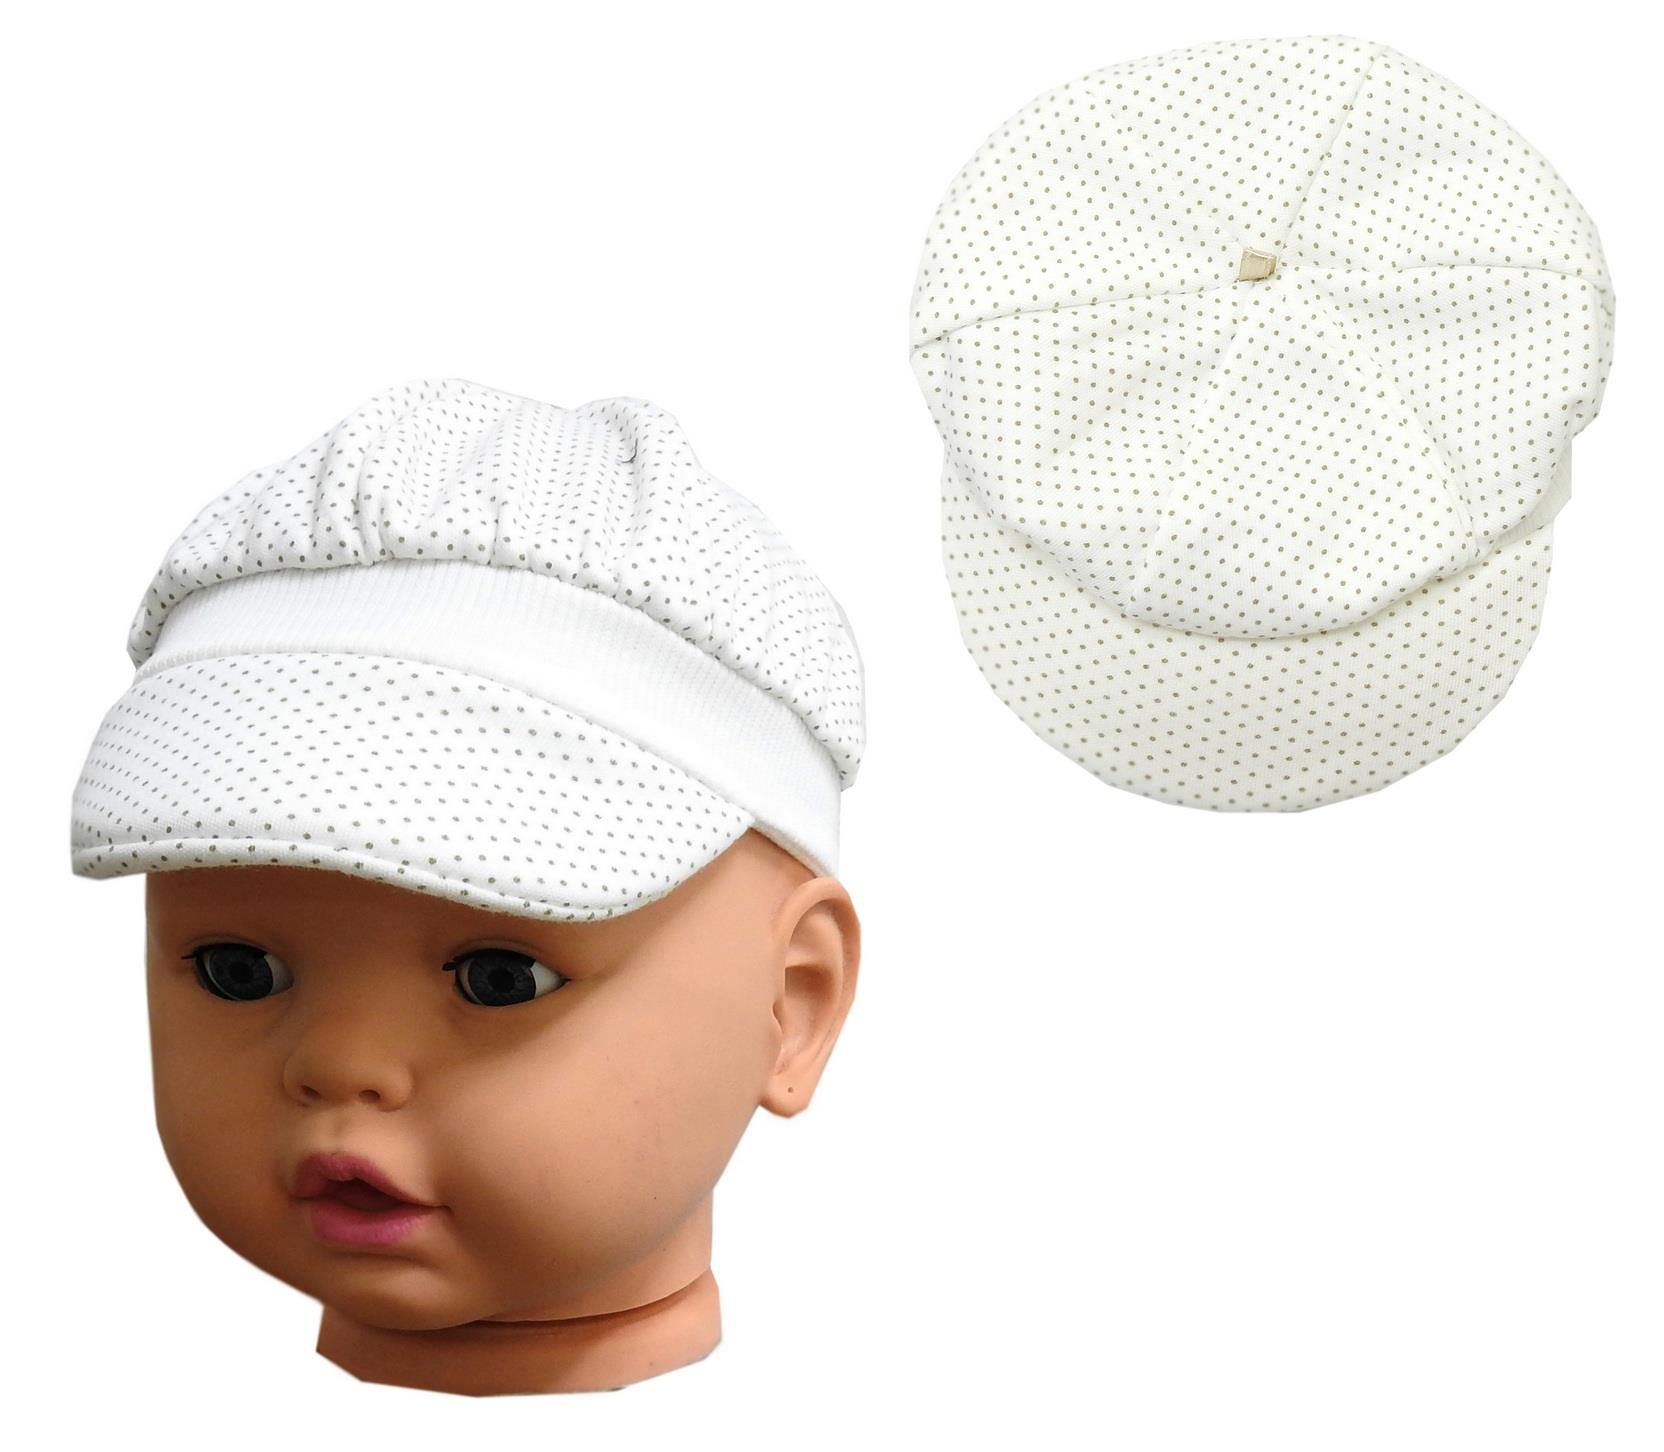 WHOLESALE CAP FOR BABY 12 PIECES IN PACKAGE PIECE PRICE IS 1.91 TL